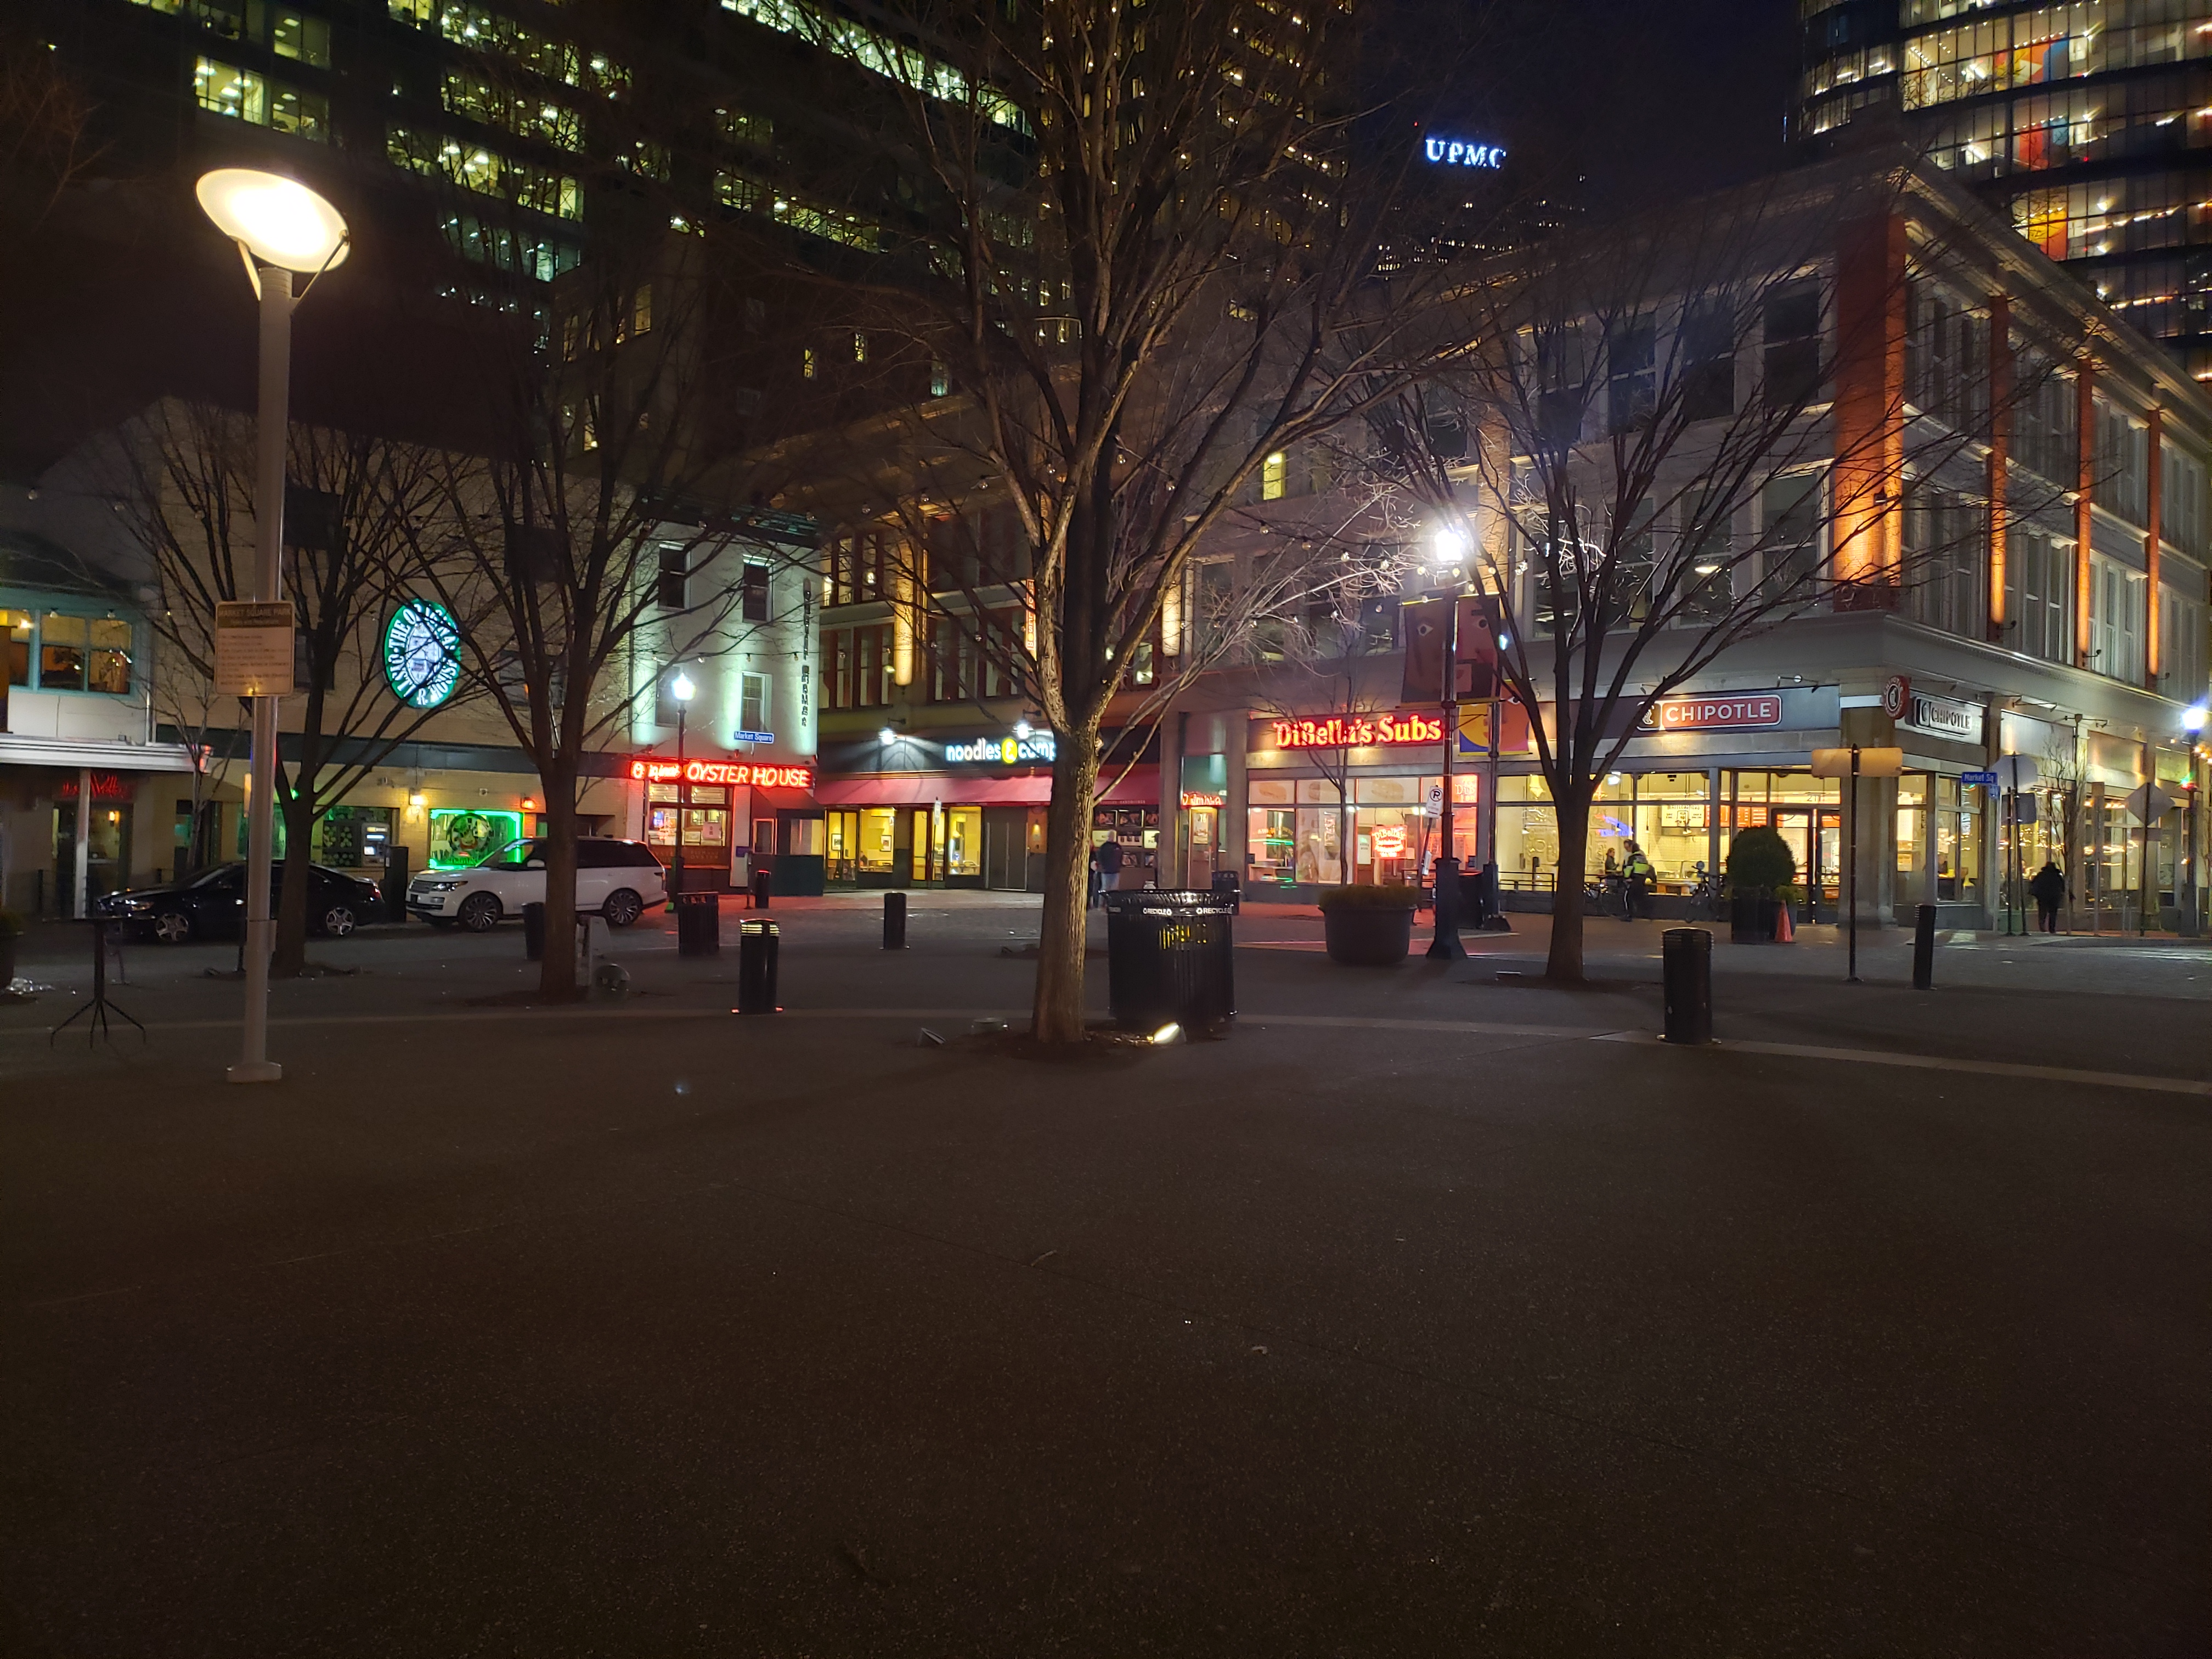 Evening in Market Square, Pittsburgh